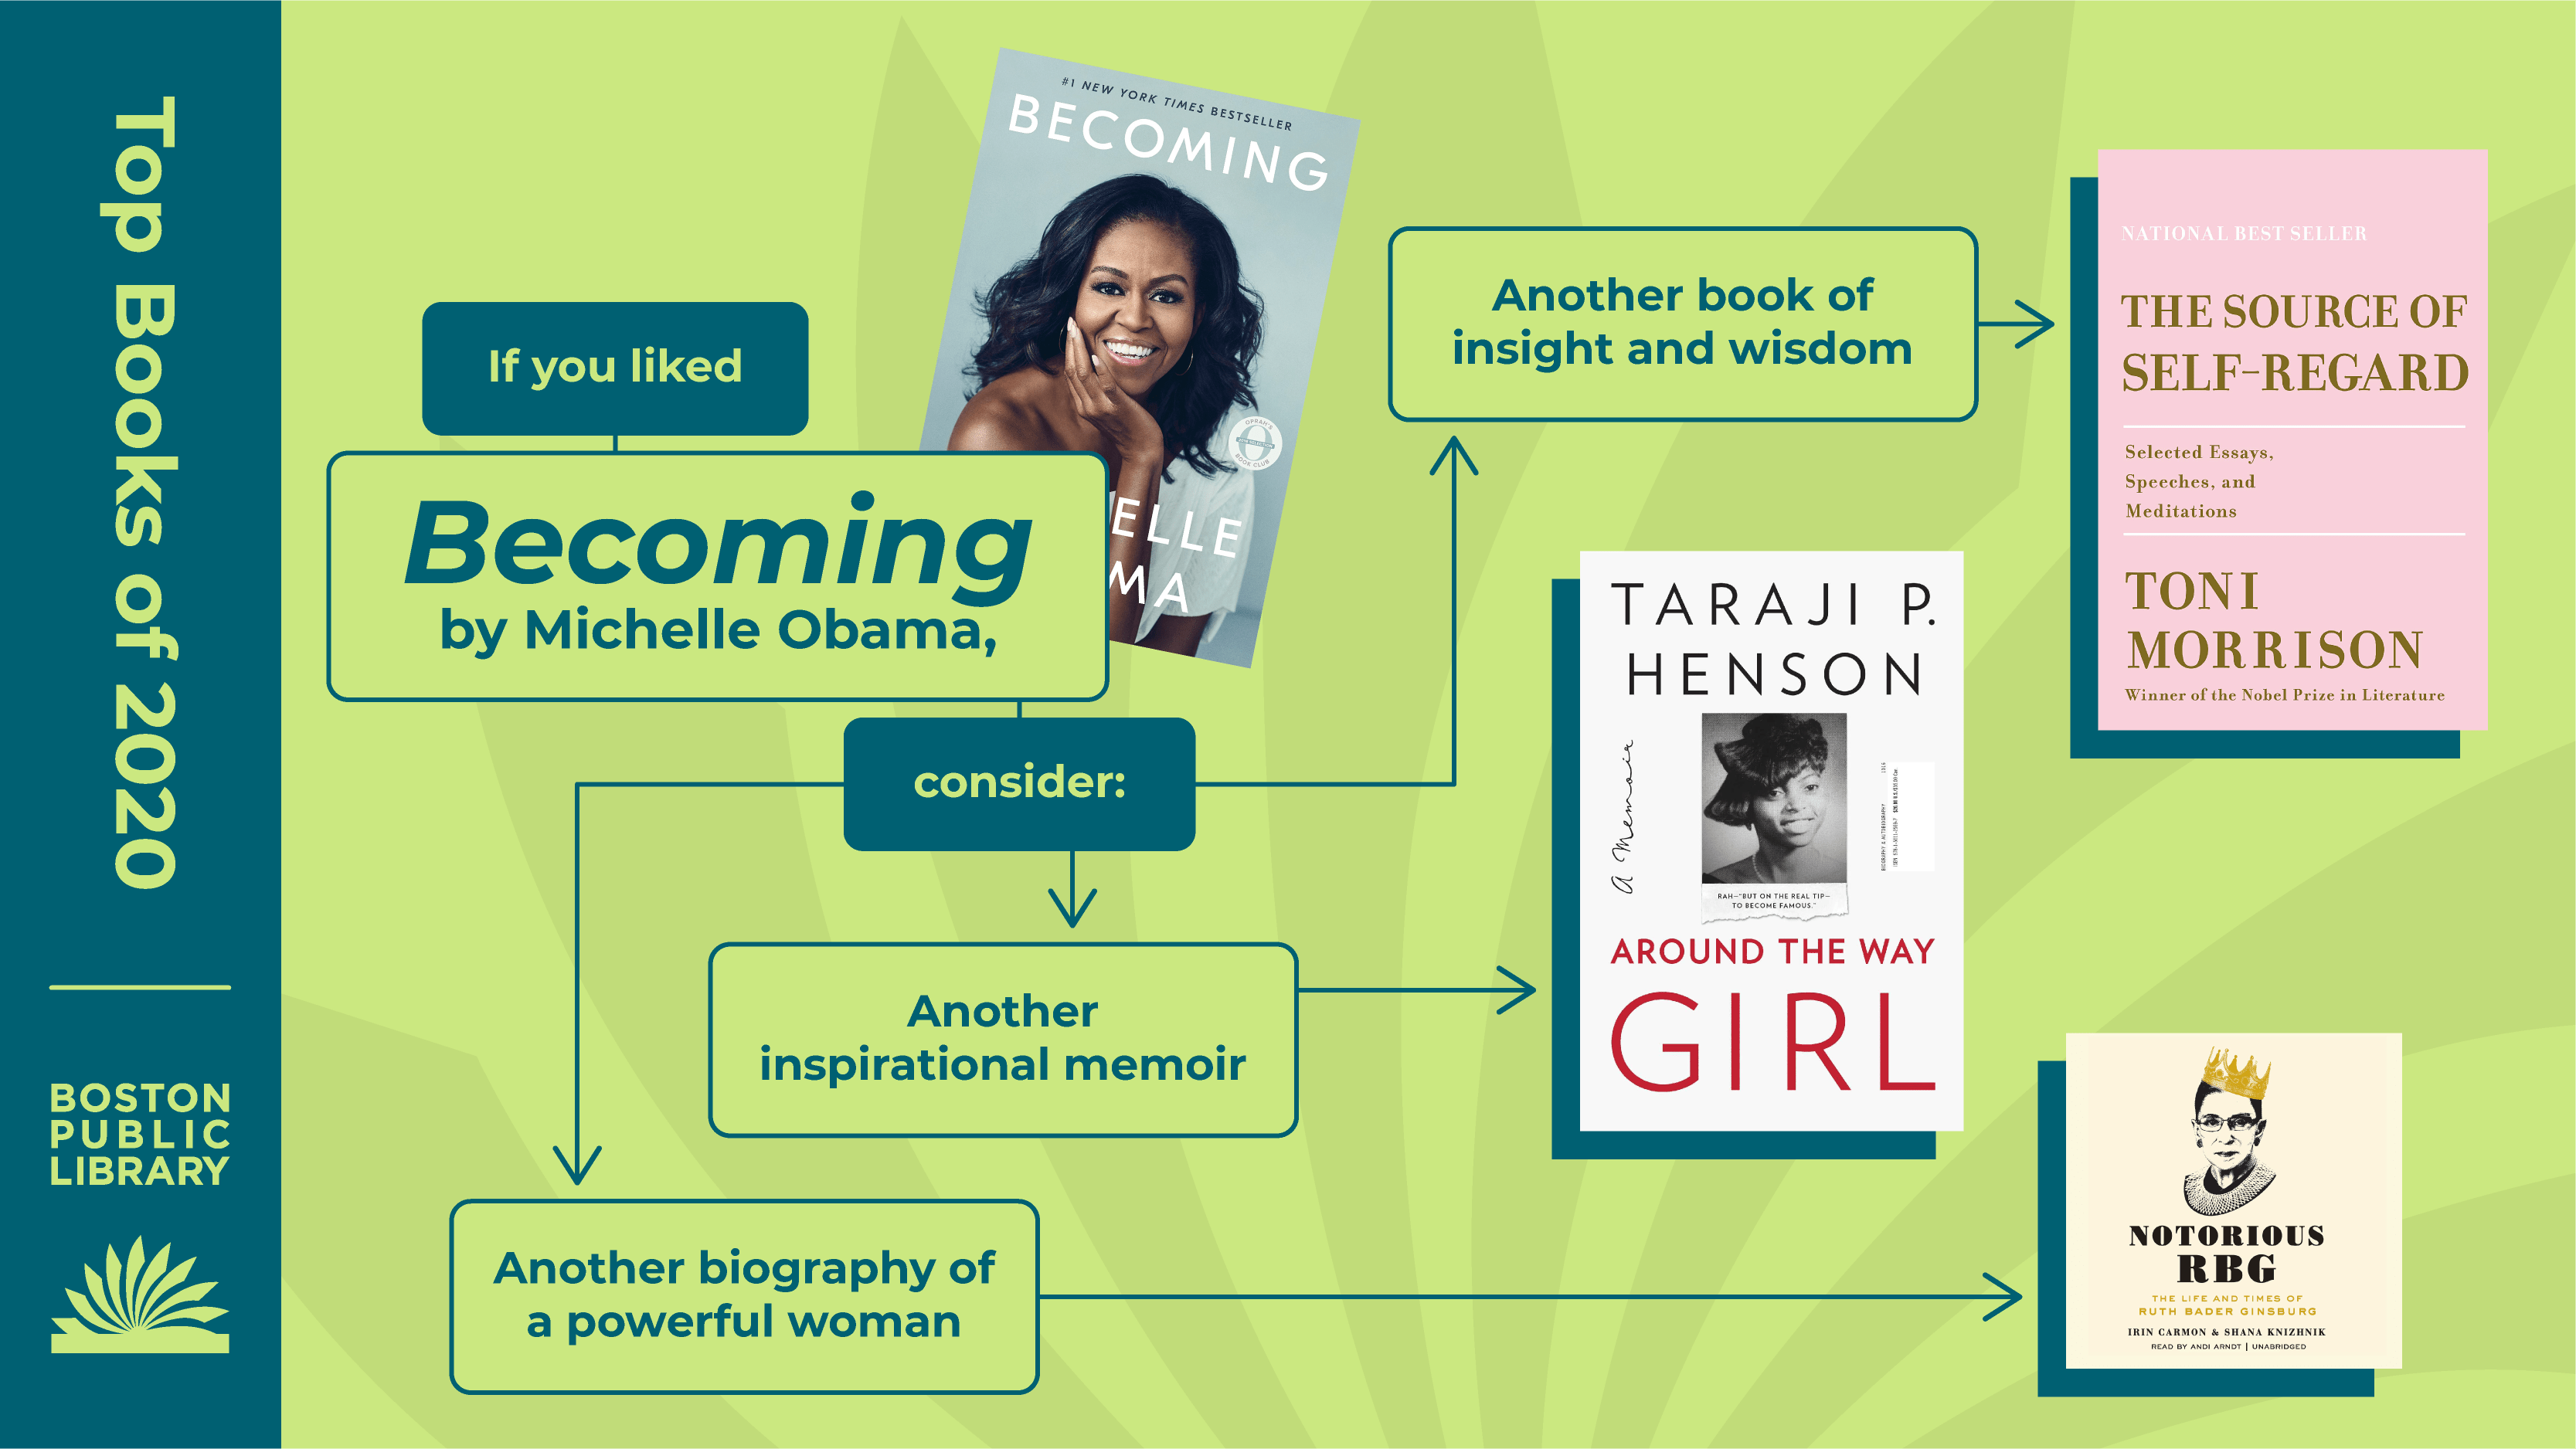 Top Books of 2020 | Boston Public Library | If you liked Becoming by Michelle Obama, consider: Another book of insight and wisdom (The Source of Self-Regard by Toni Morrison), Another inspirational memoir (Around the Way Girl by Taraji P. Henson), Another biography of a powerful woman (Notorious RBG by Erin Carmon & Shana Knizhnik).